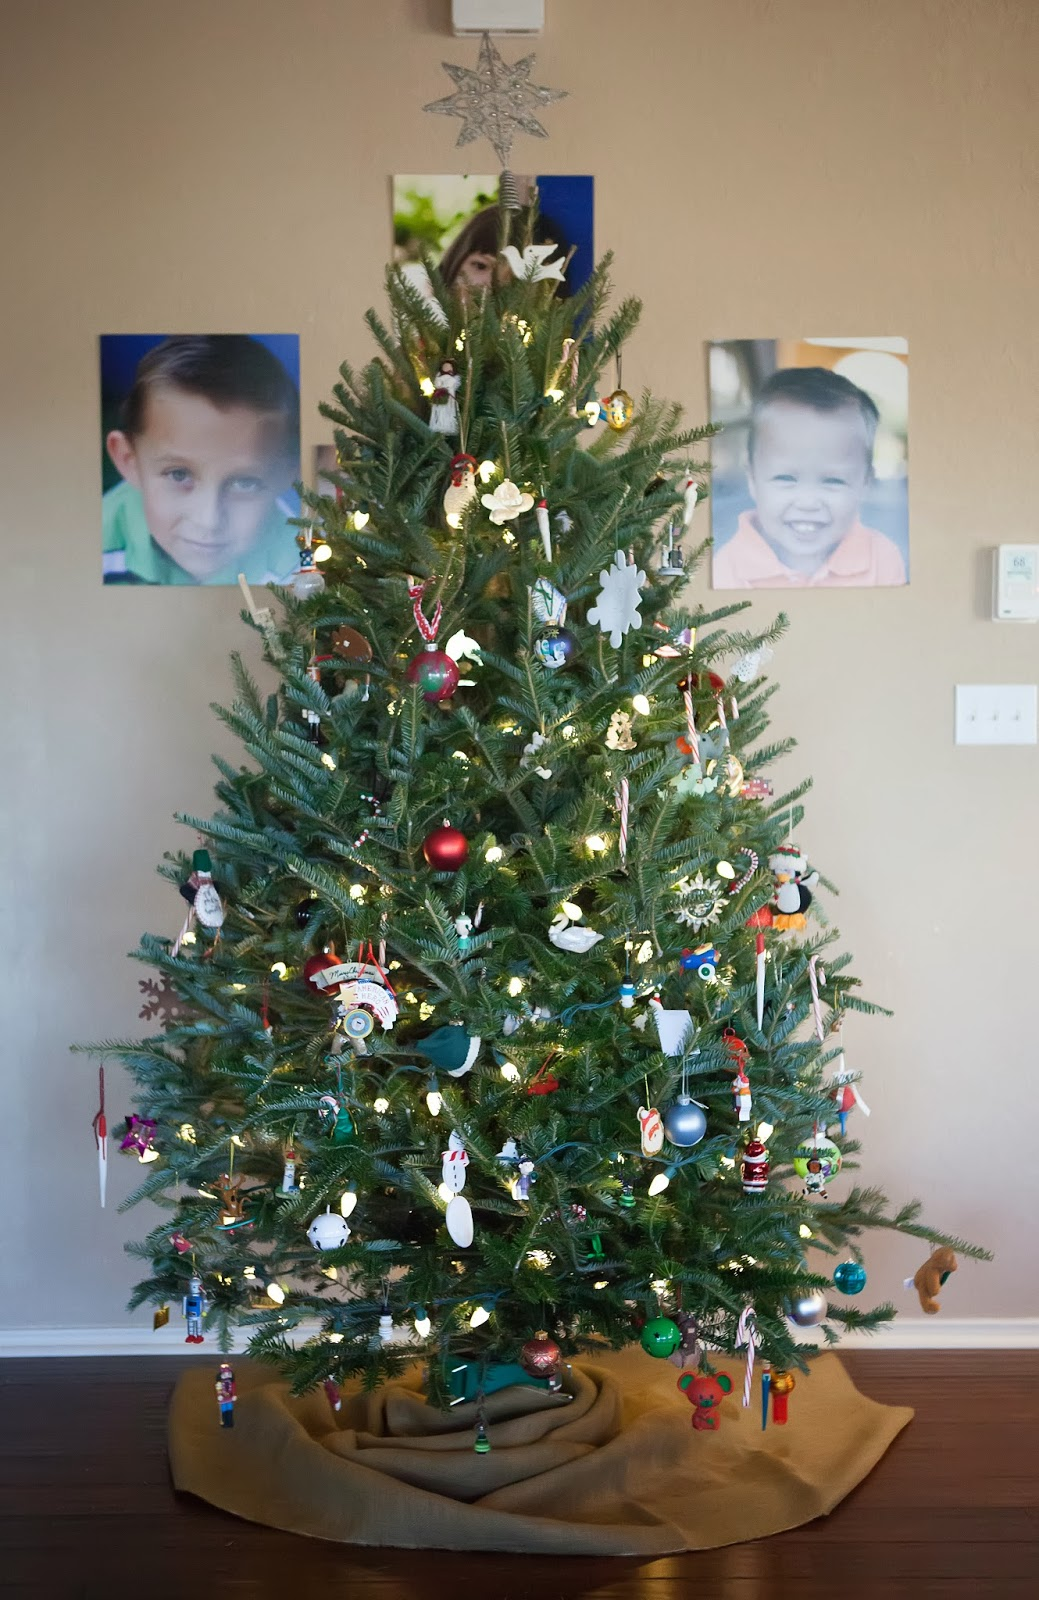 Christmas Decorating: Simple and Homemade | S.L. Smith Photography